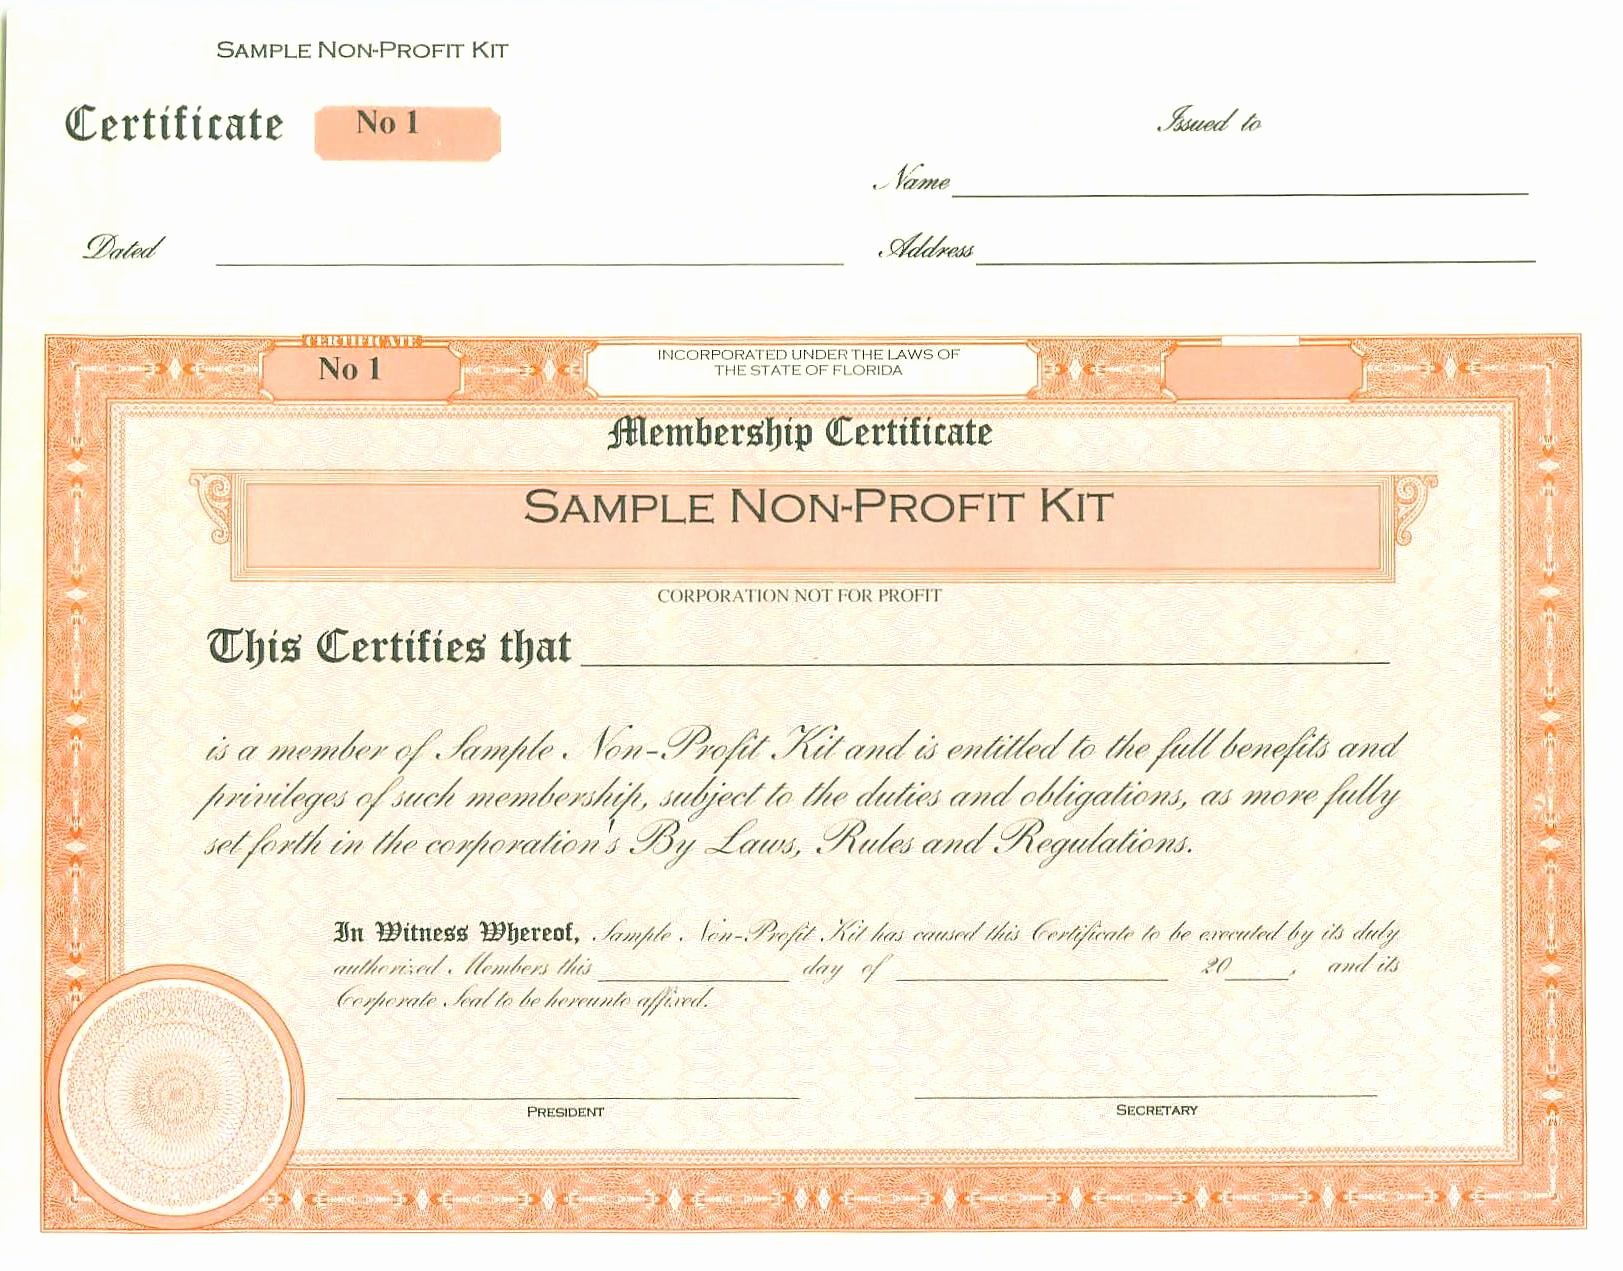 Llc Stock Certificate Template Inspirational Your Capital Connection Inc